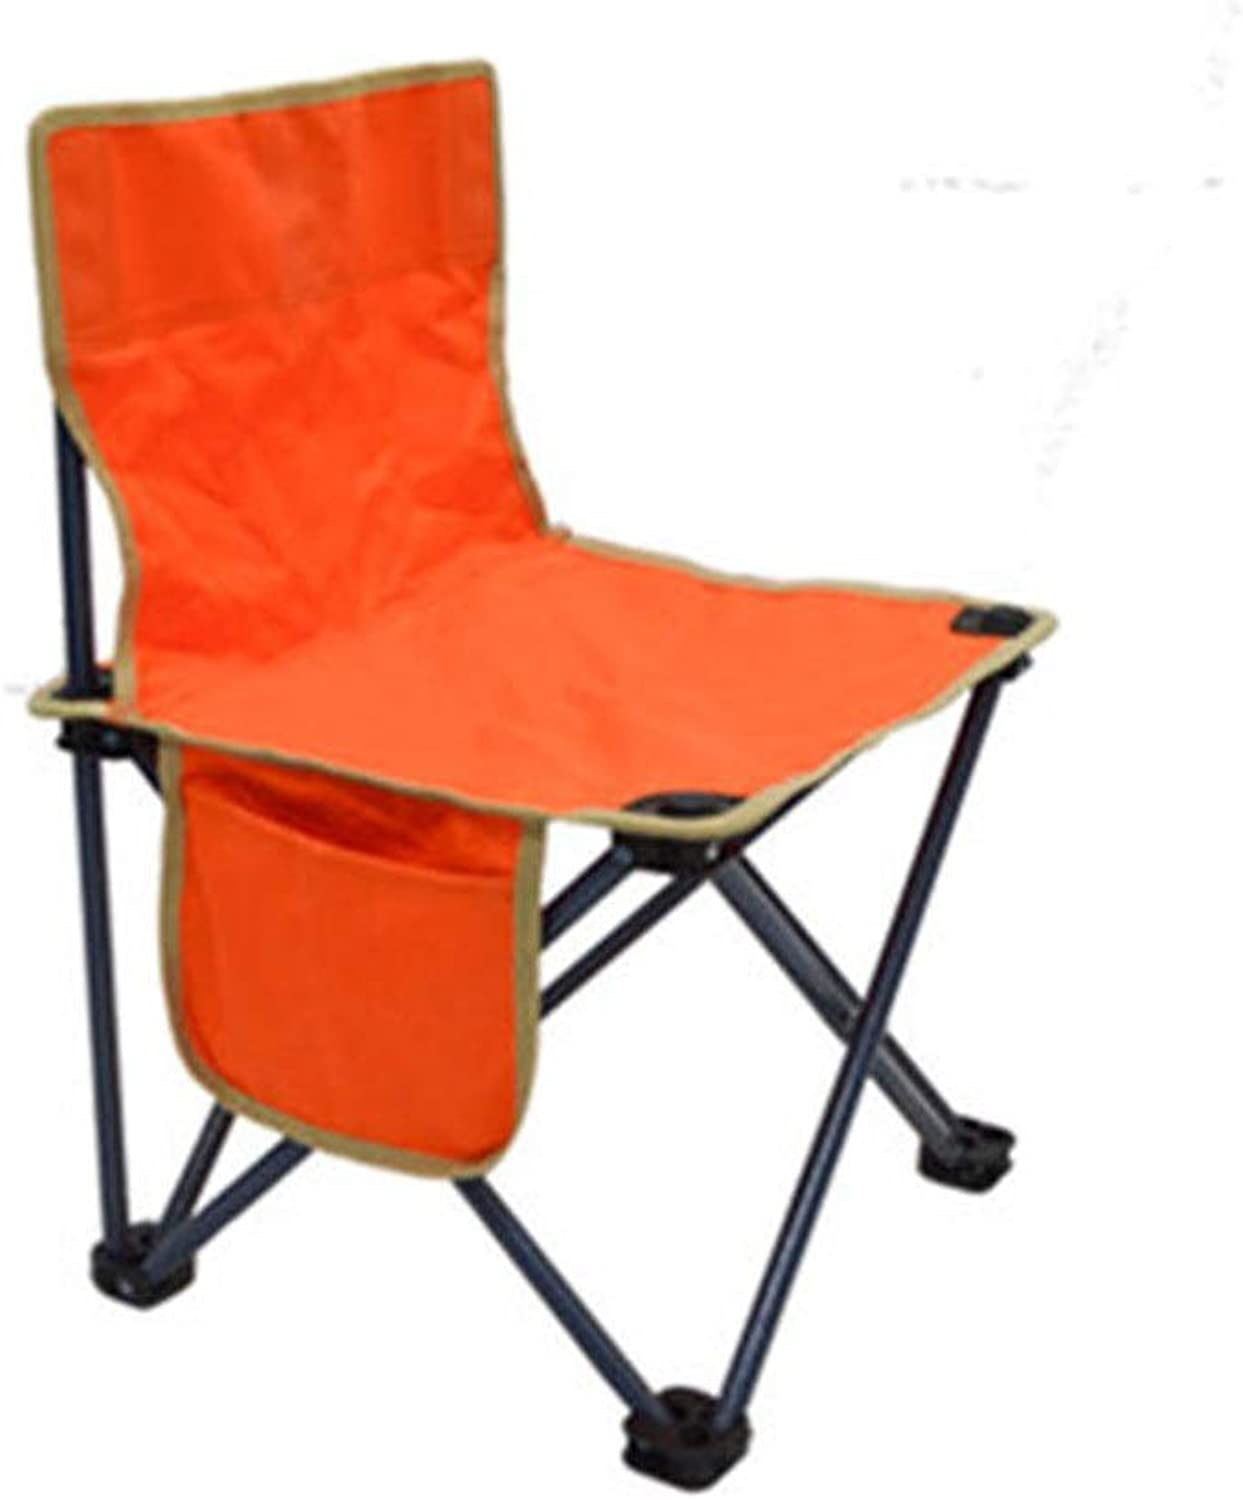 Camping Chair, Portable Folding Ultra Light Chair with Carry Bag, Perfect for Home Patio Decking Holiday Beach